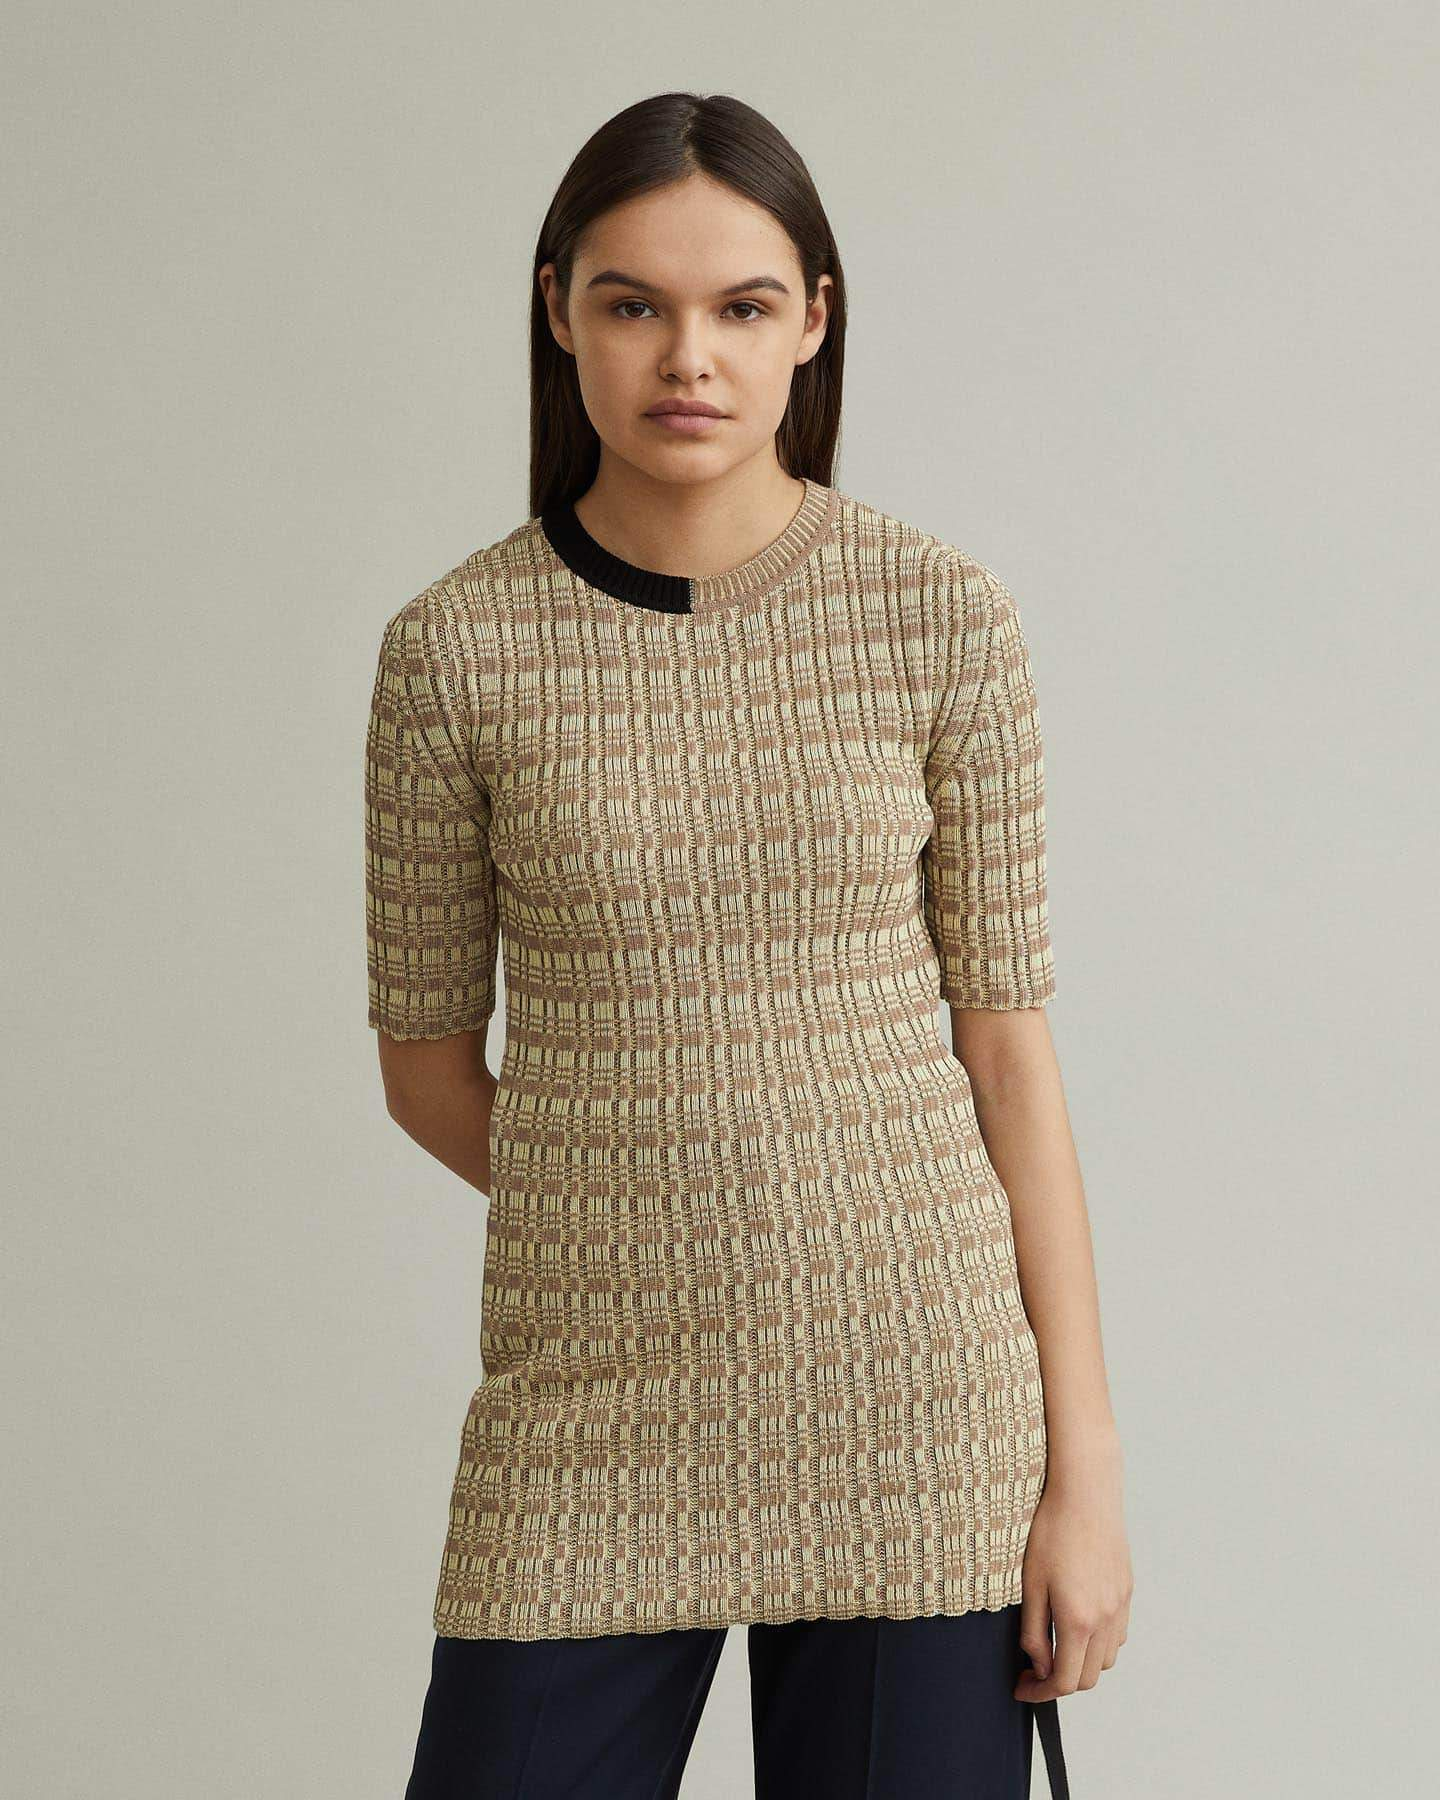 /products/short-sleeve-sweater-with-contrast-neckline